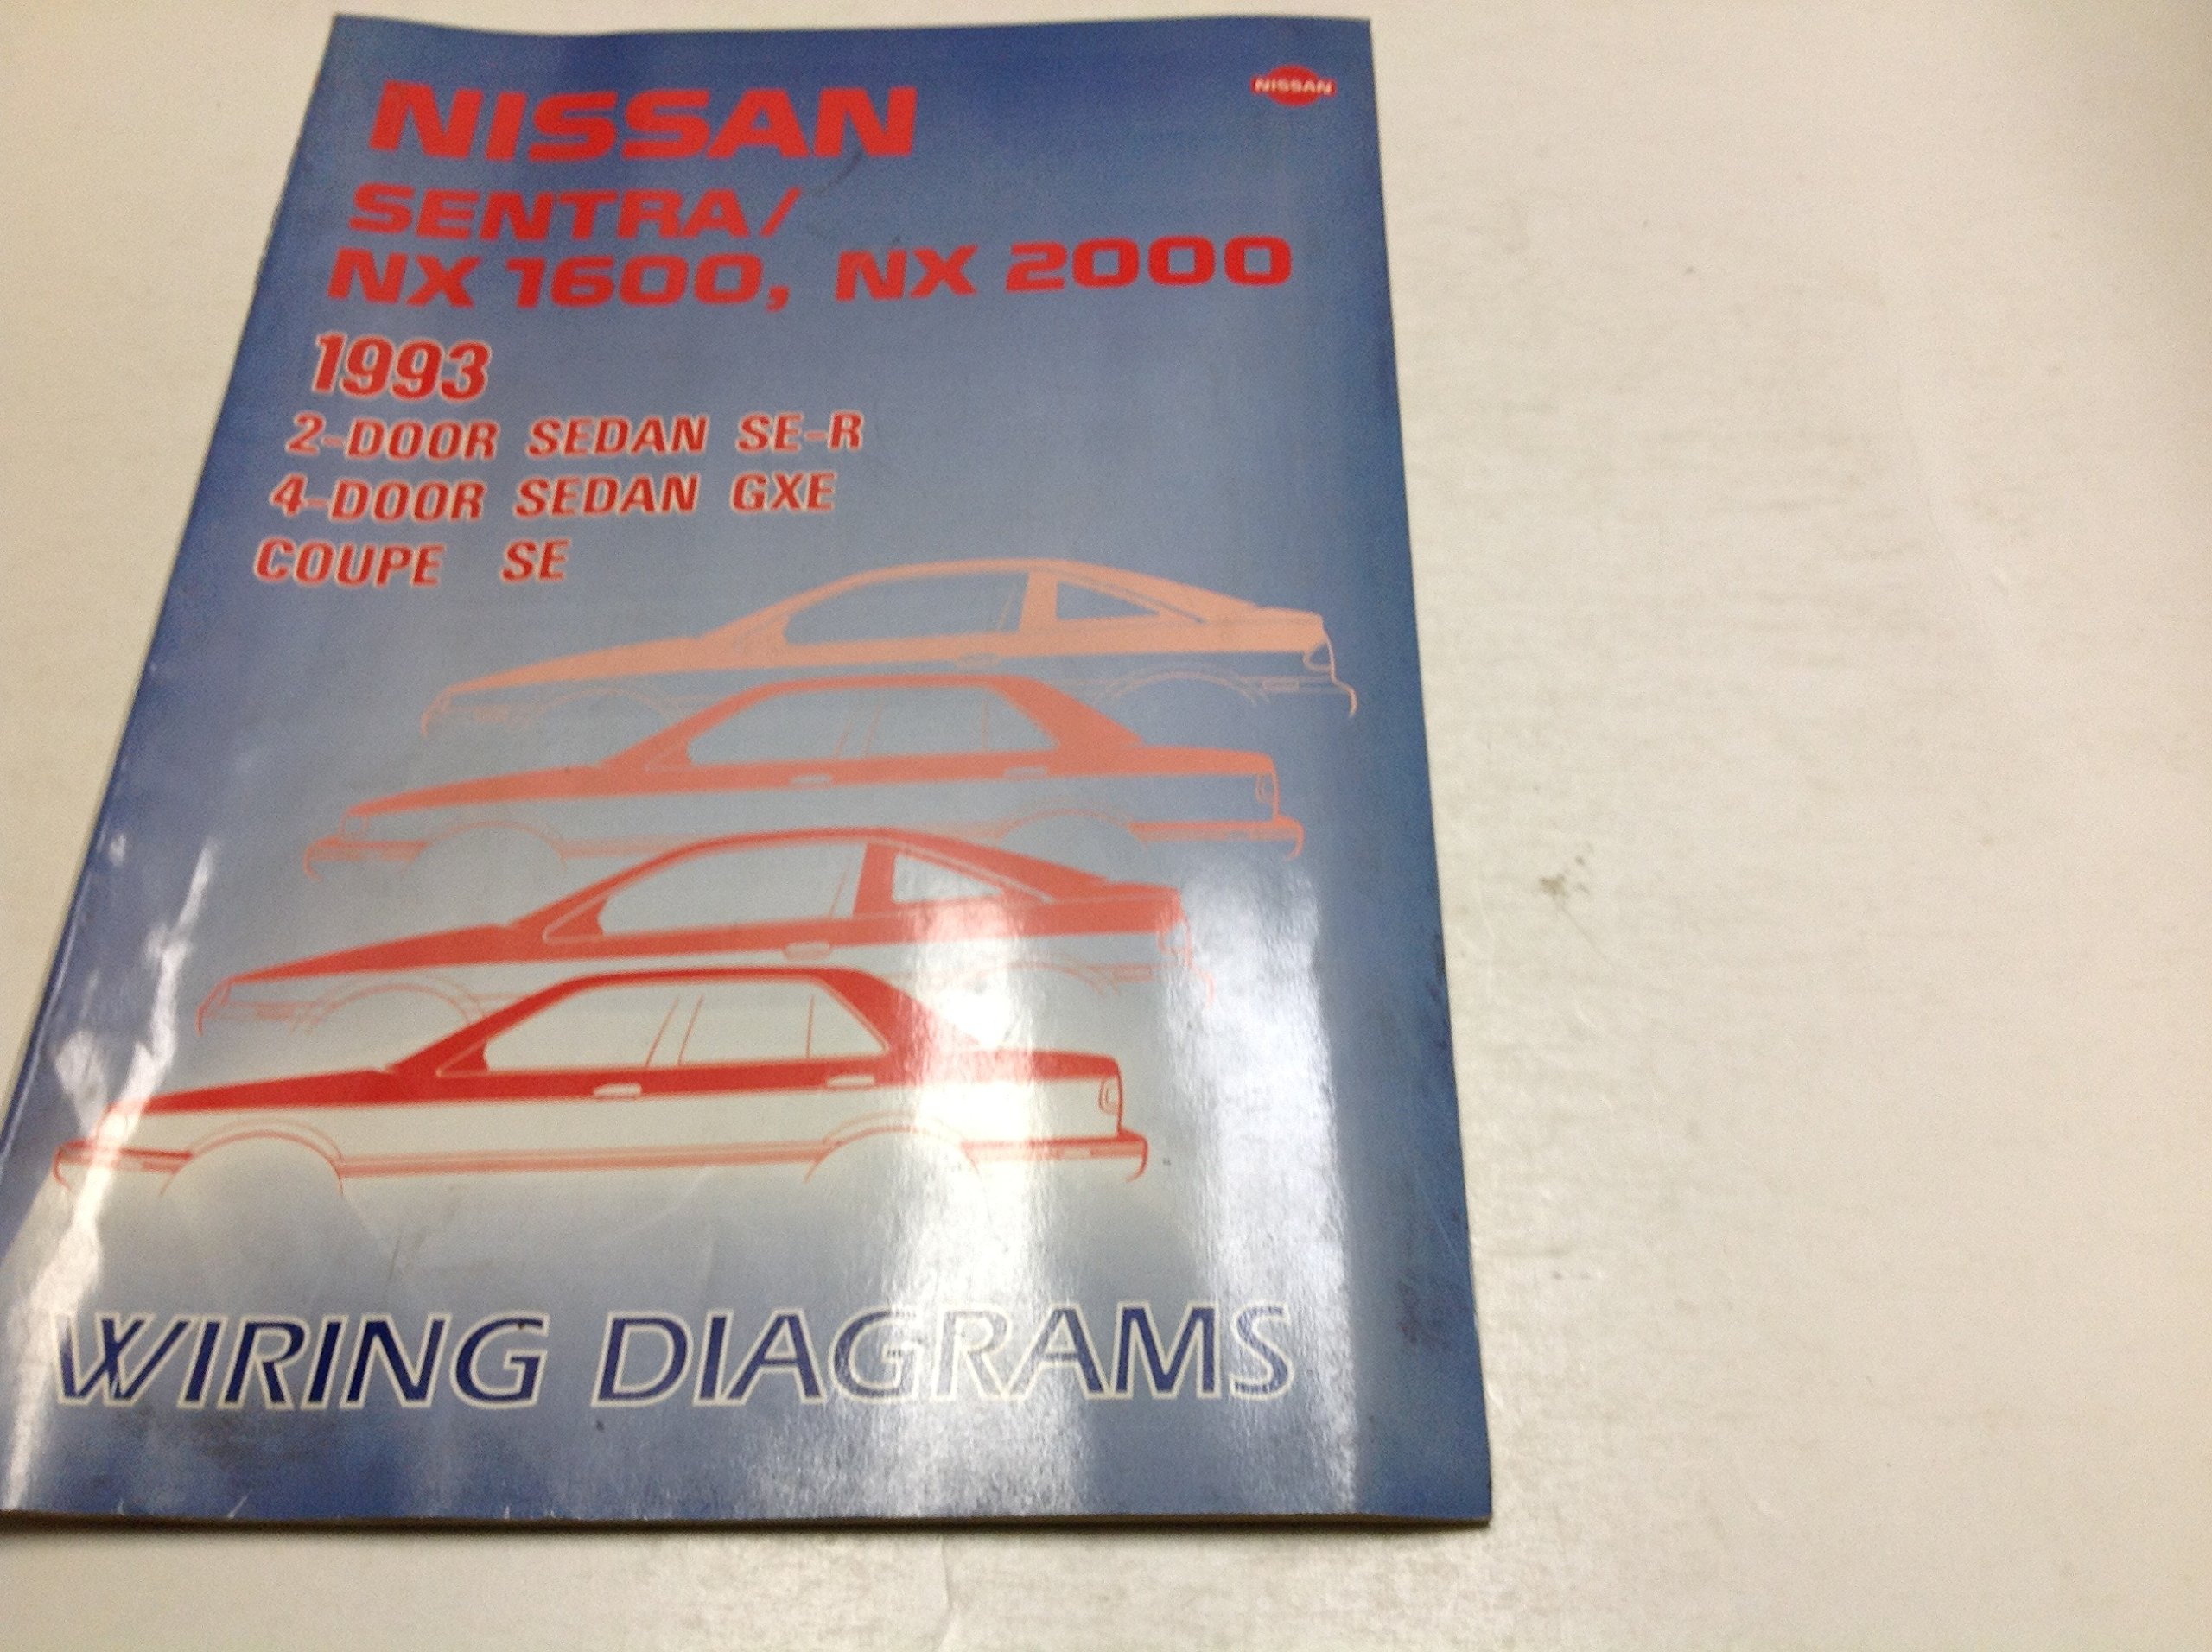 1993 nissan sentra nx 1600 2000 electrical wiring digram1993 nissan sentra nx 1600 2000 electrical wiring digram troubleshooting manual paperback \u2013 1992